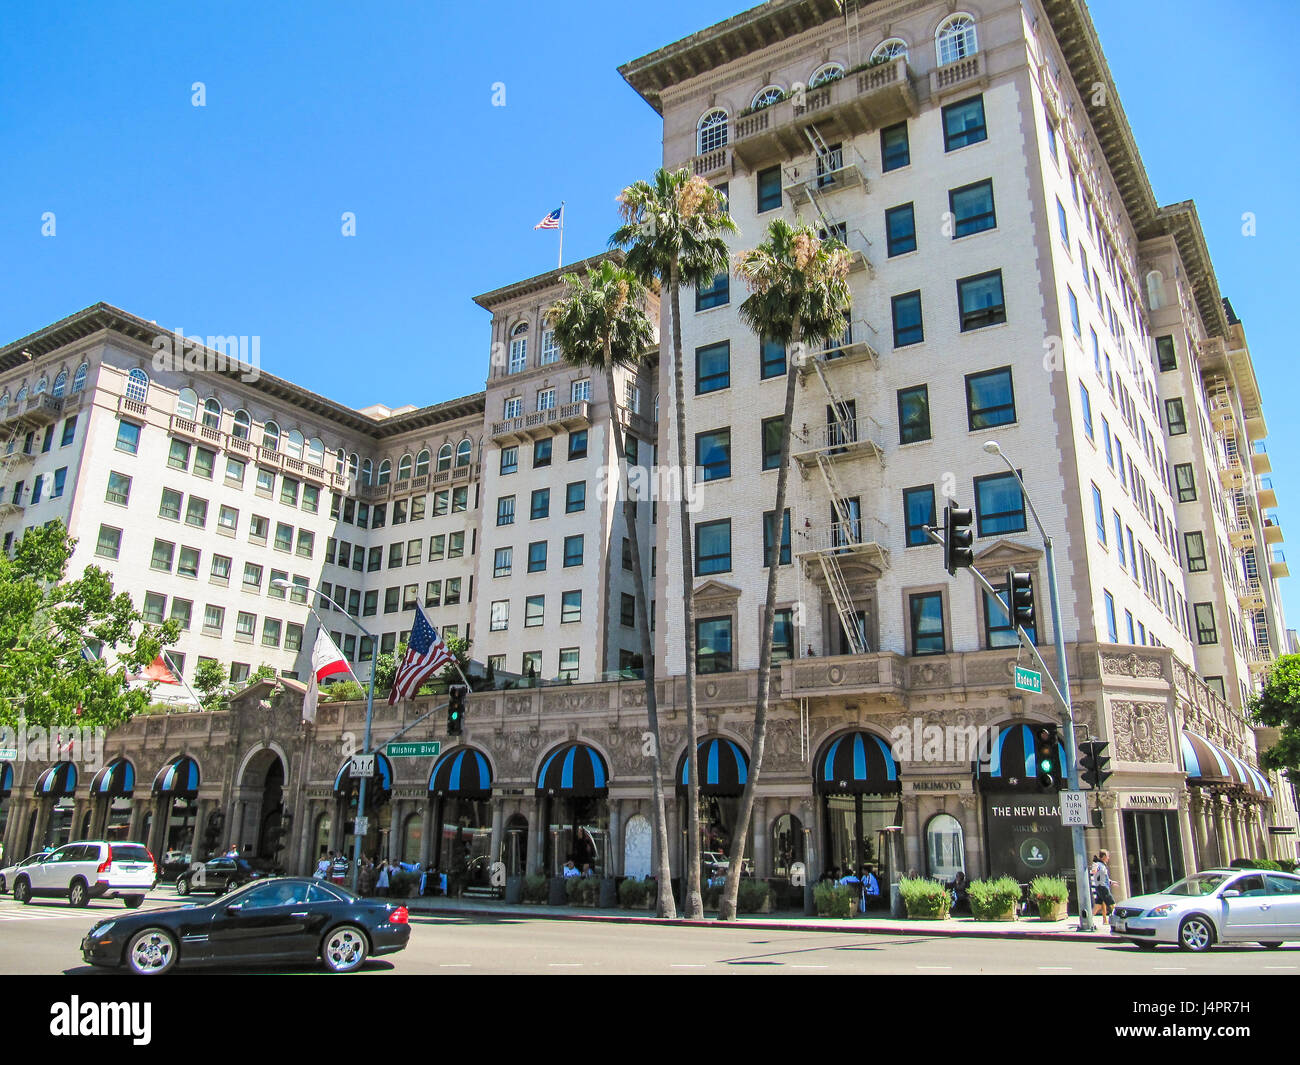 Los Angeles, USA - May 25, 2010: Wilshire boulevard with hotel, people, stores and street with cars - Stock Image